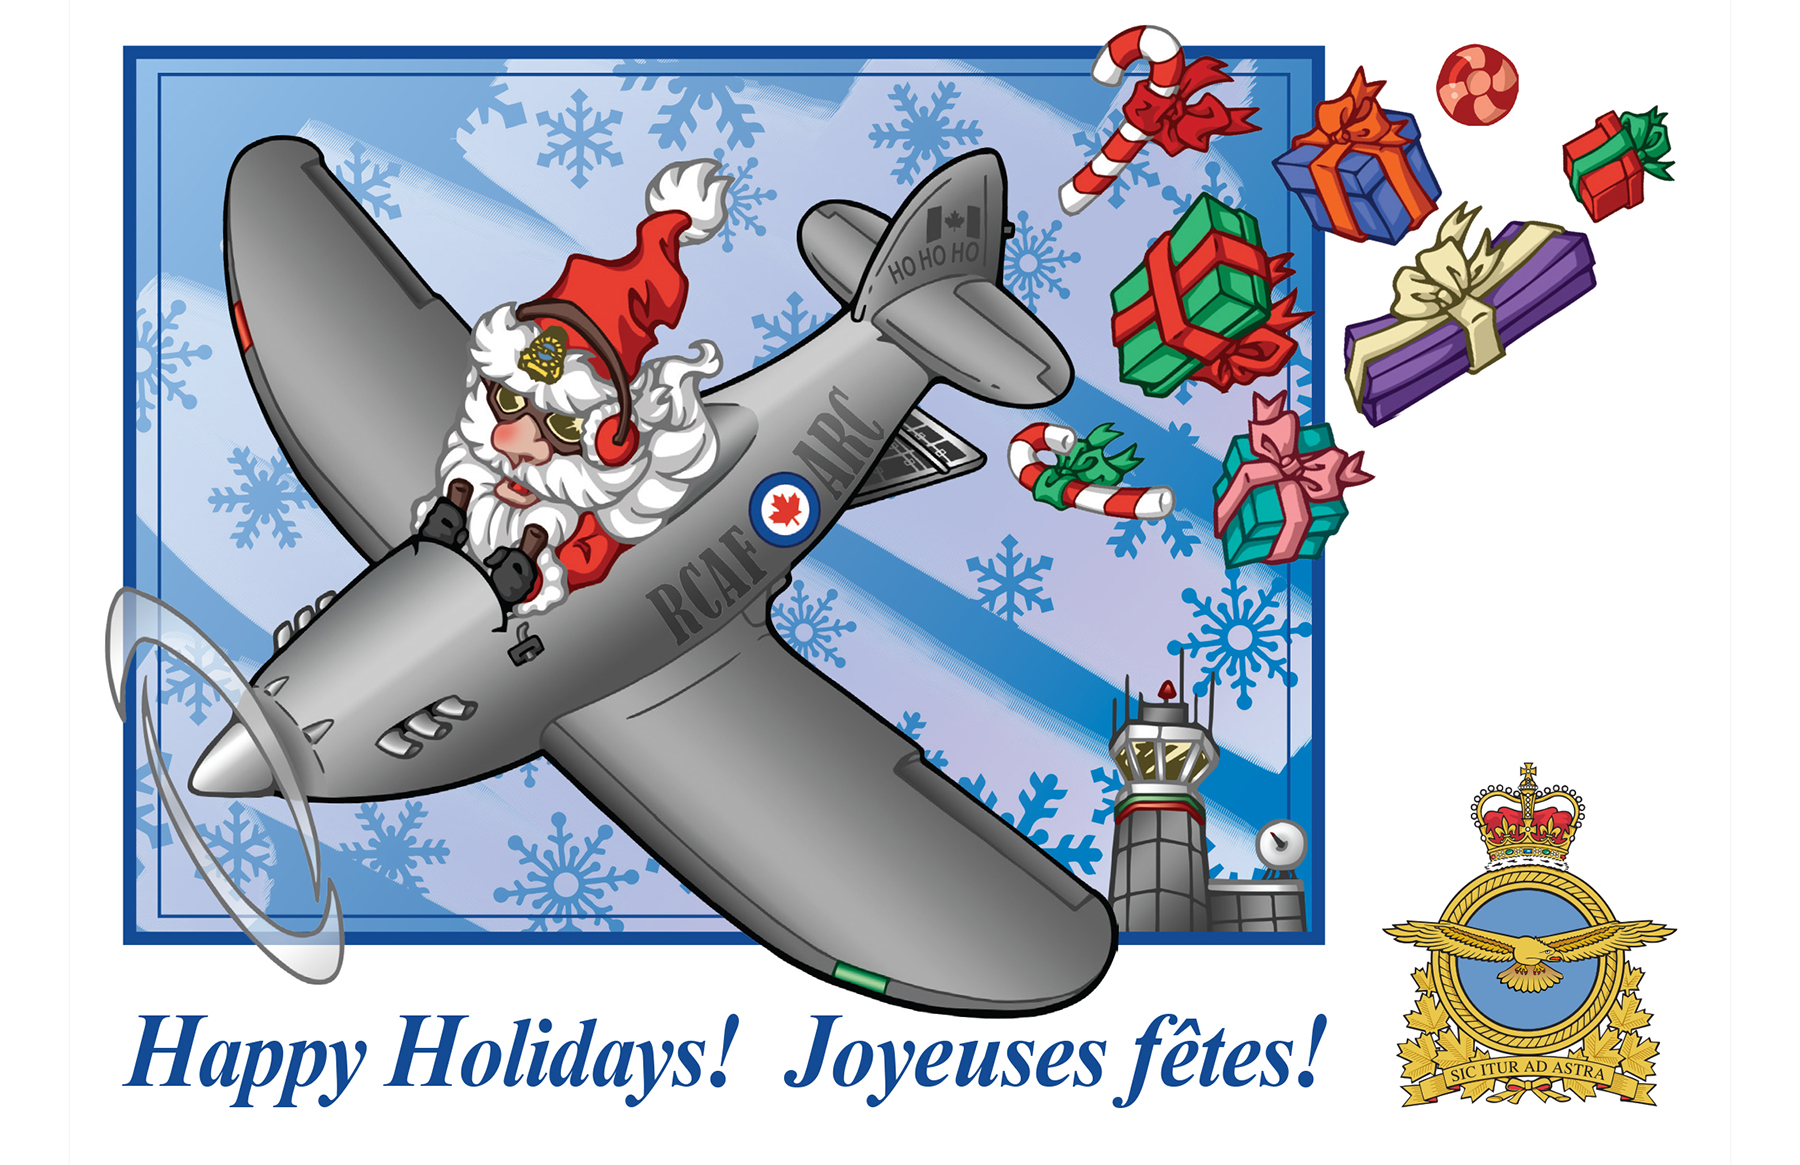 Royal Canadian Air Force News Article Christmas And Holiday